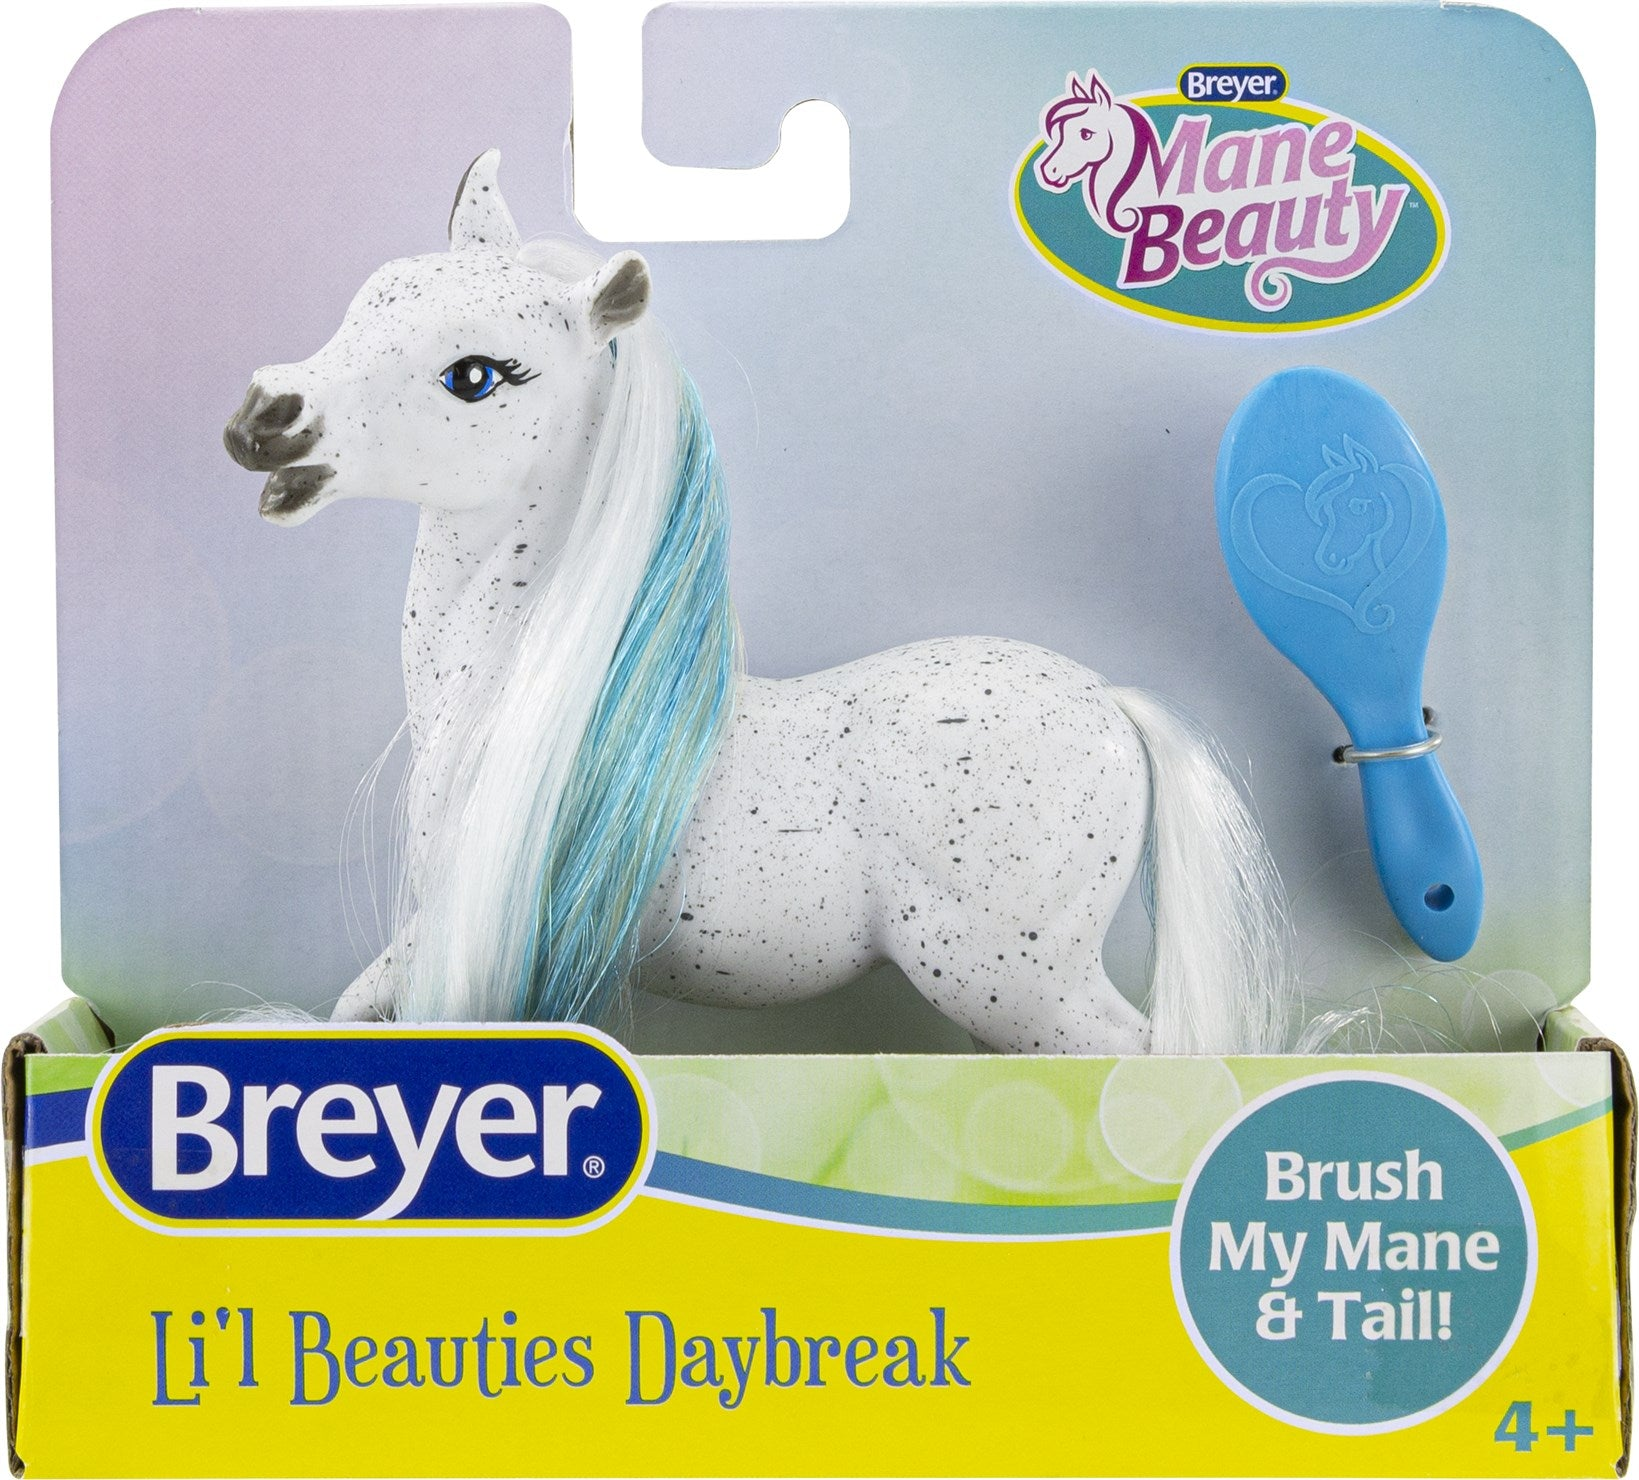 Breyer Mane Beauty Li'l Beauties Daybreak